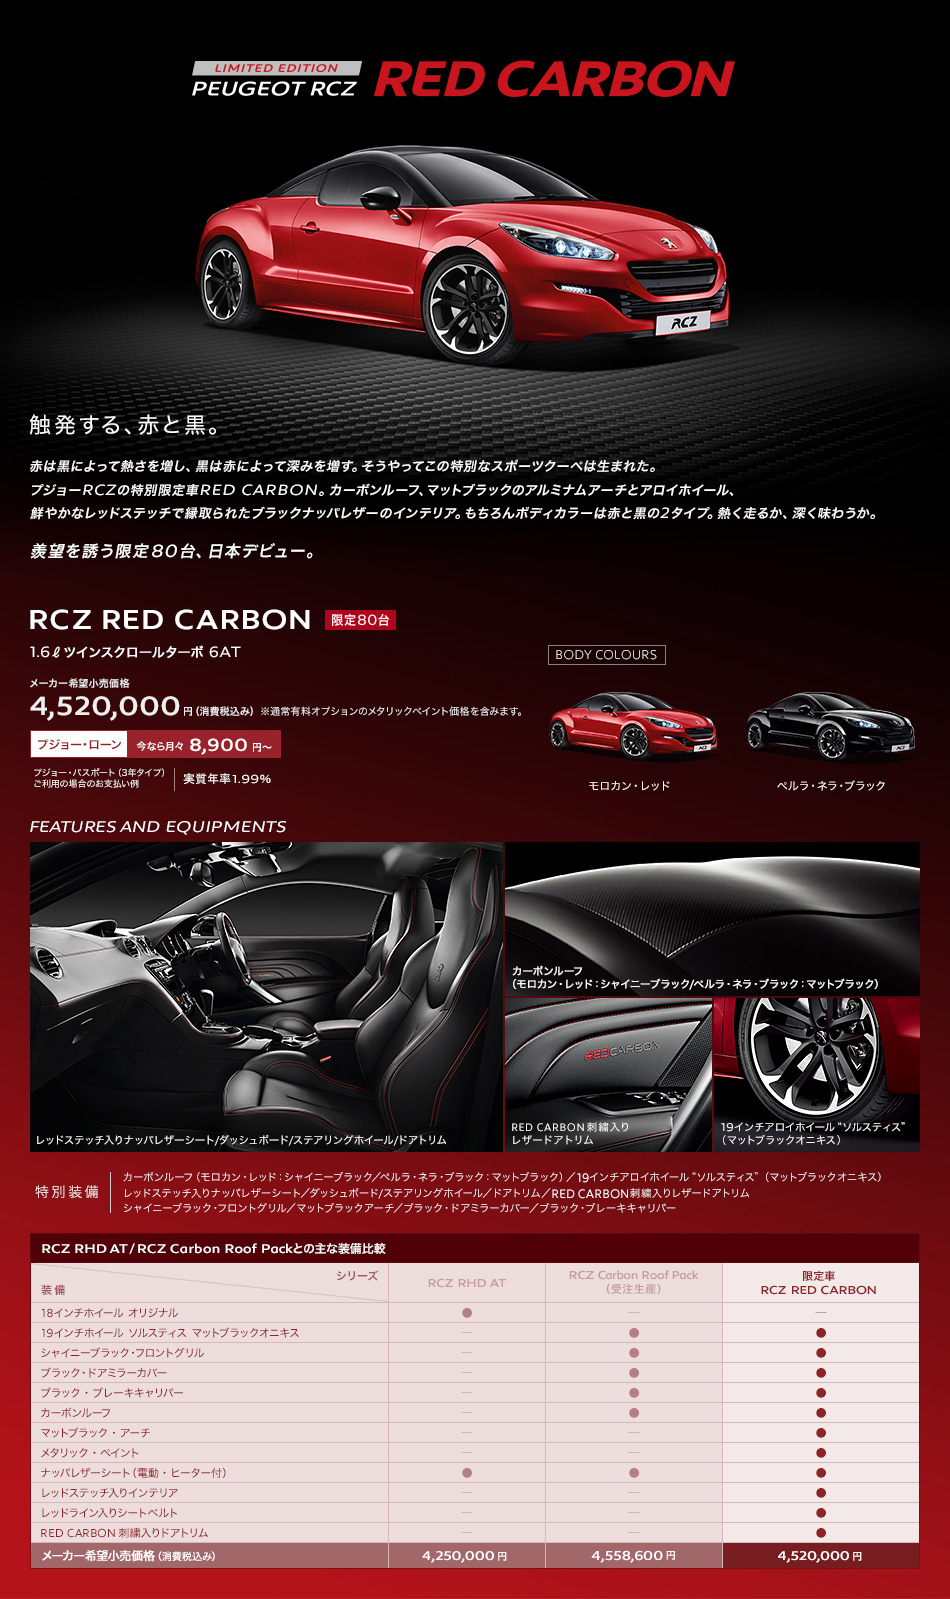 PEUGEOT RCZ RED CARBON_セクション01